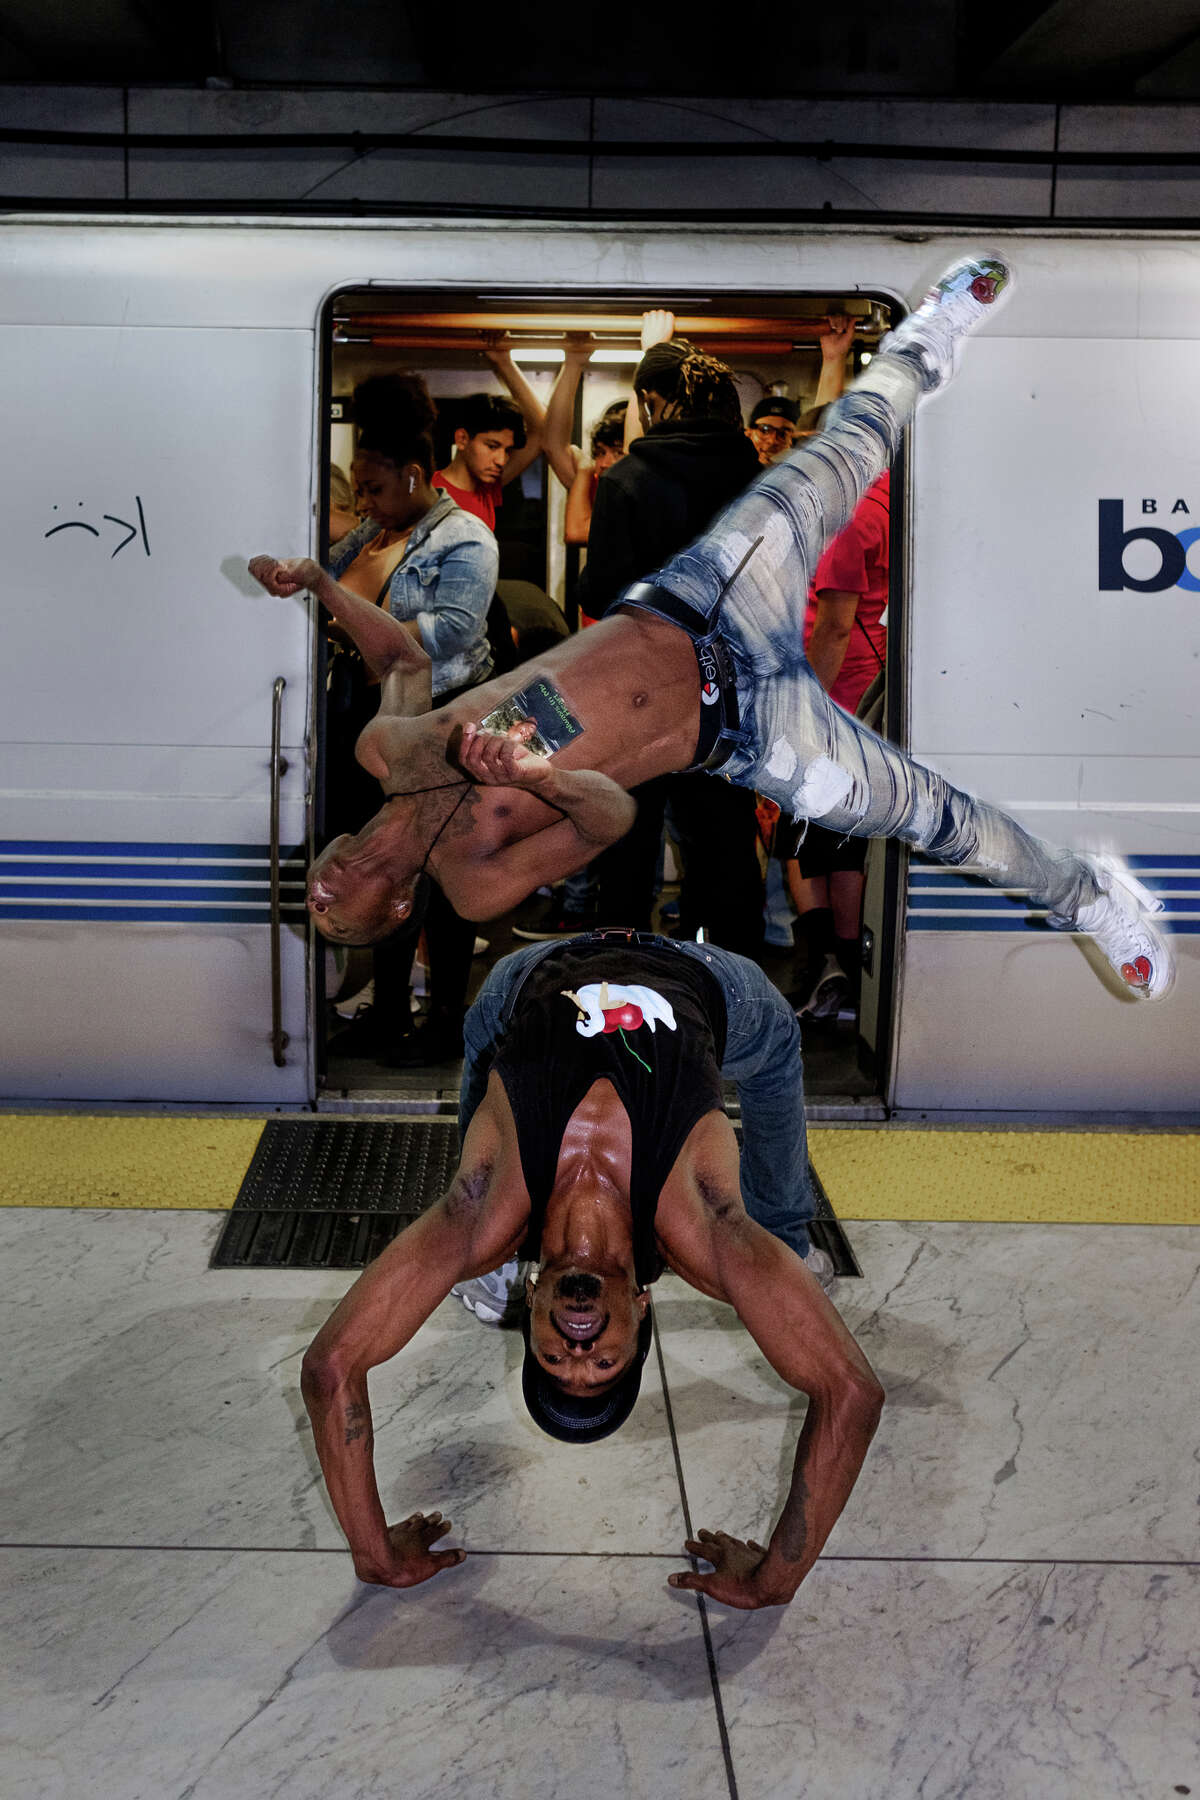 Best Alive performs at (and on) various BART stations and trains.